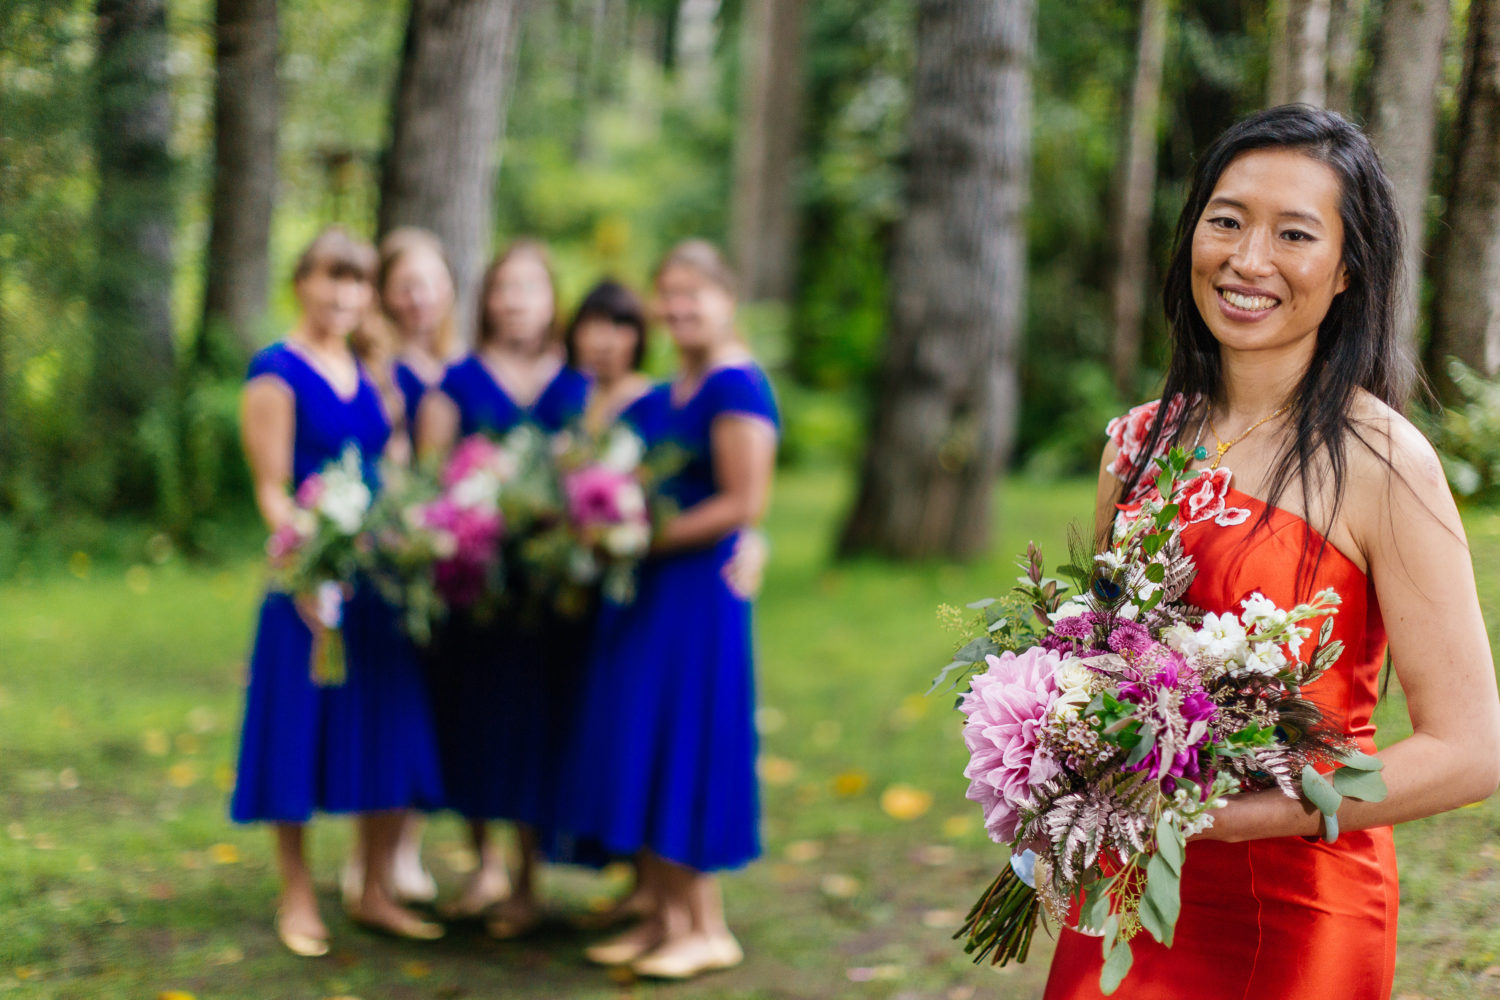 Floral design by Natasha Price of Paper Peony Alaska | Photo by Chugach Peaks Photography